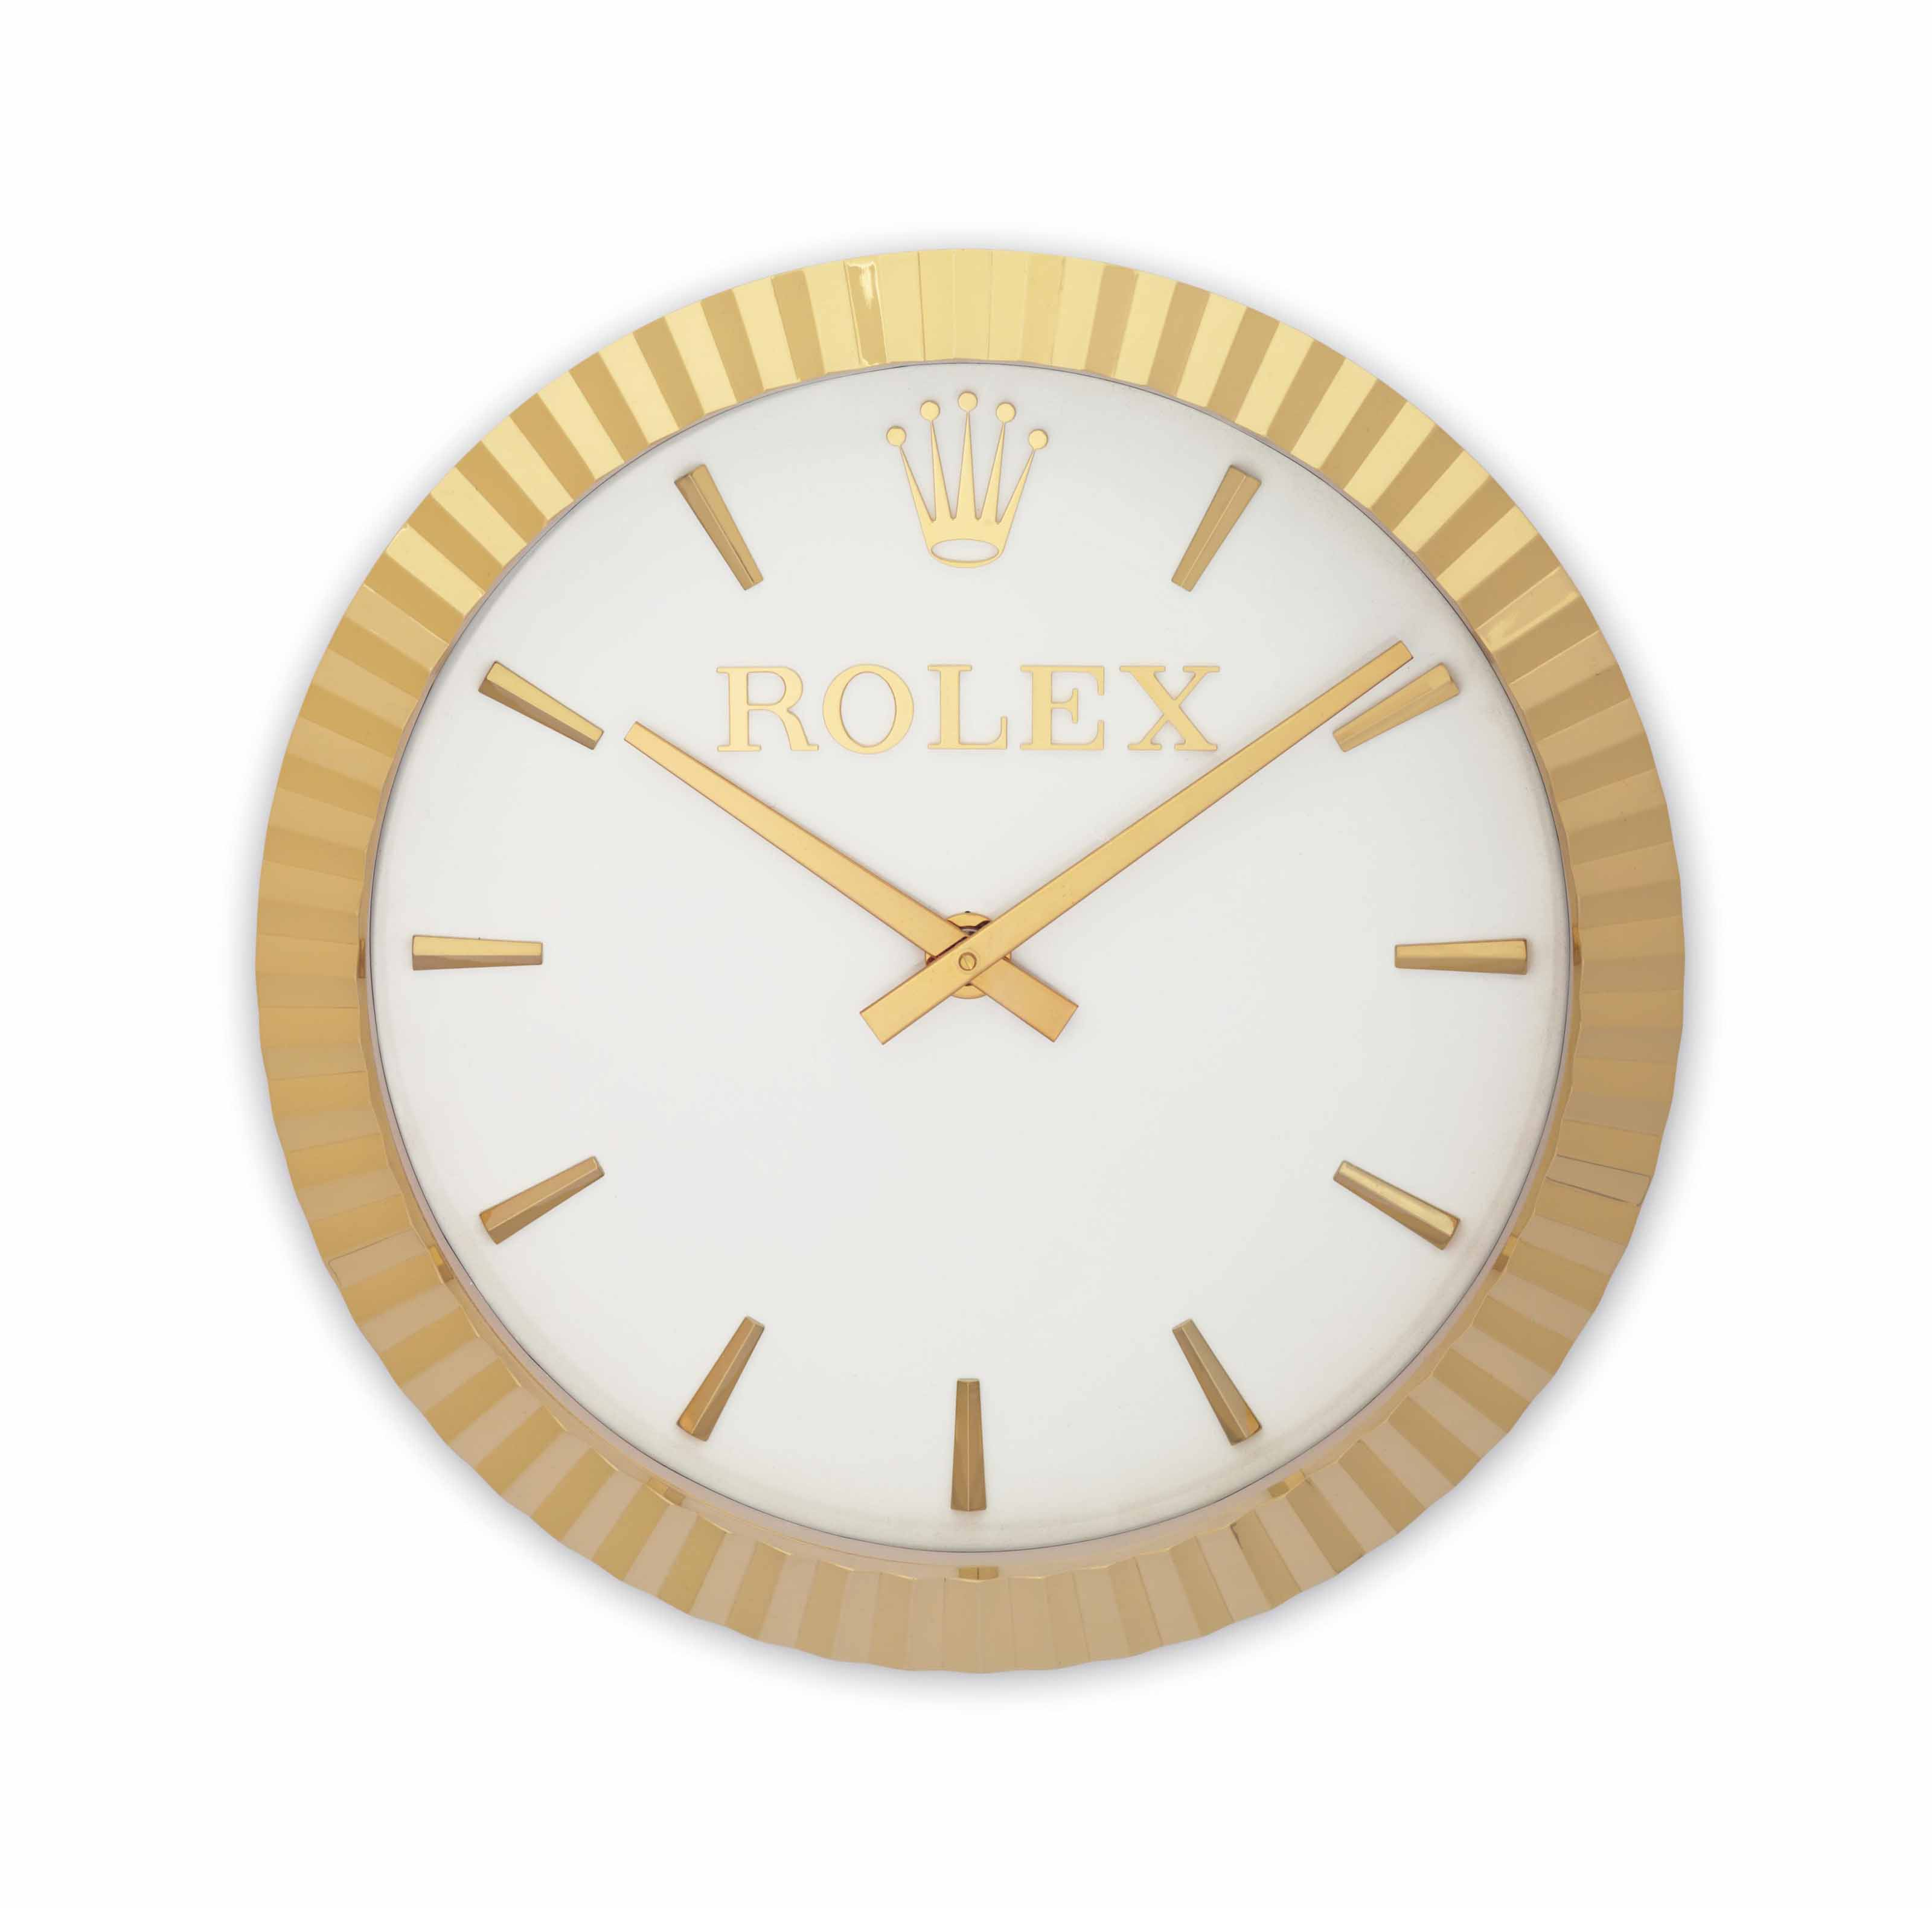 Inducta for Rolex  A Large and Attractive Wall Clock